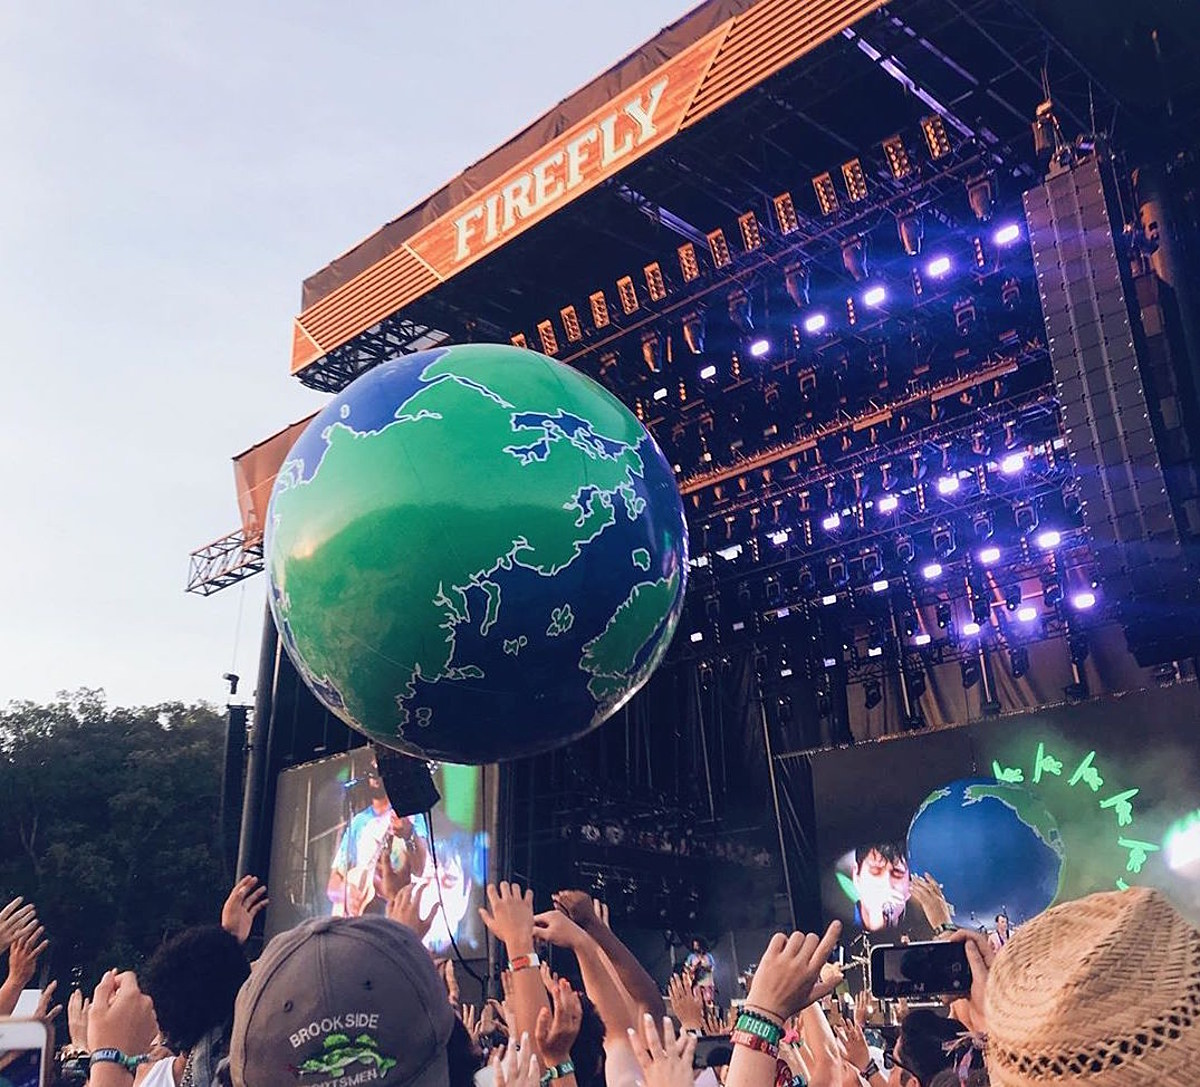 Vampire Weekend played Firefly, added Merriweather Post Pavilion, covered The Doors in NC